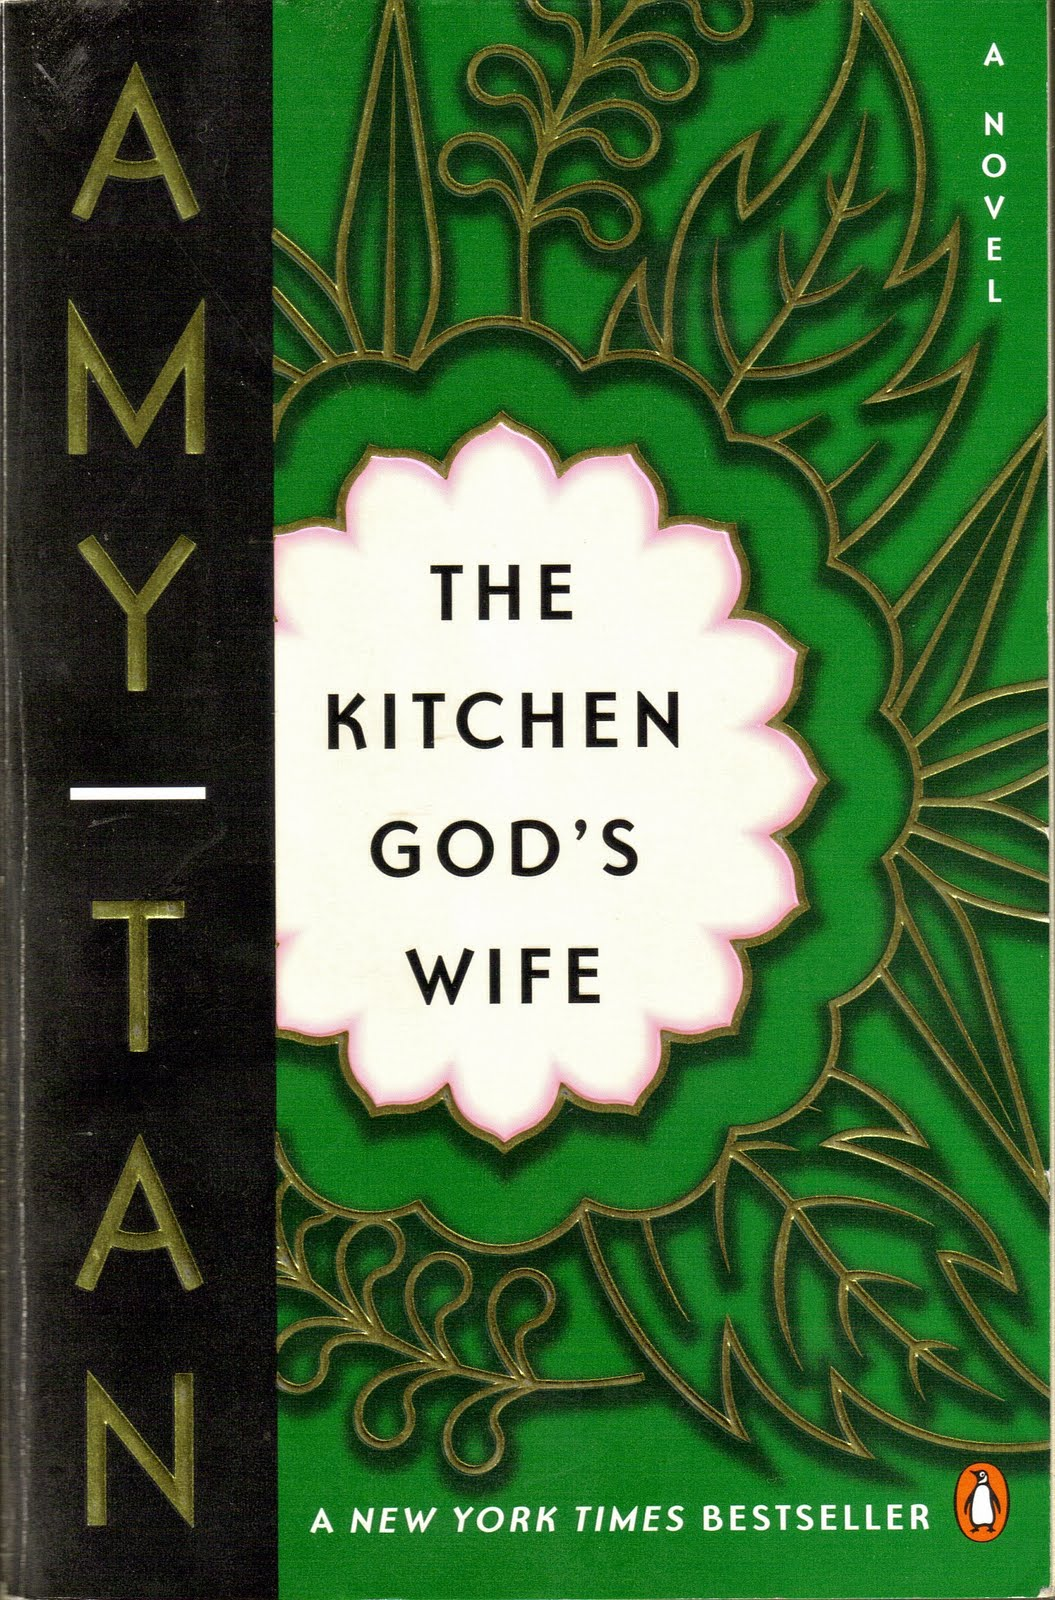 amy tan kitchen god's wife